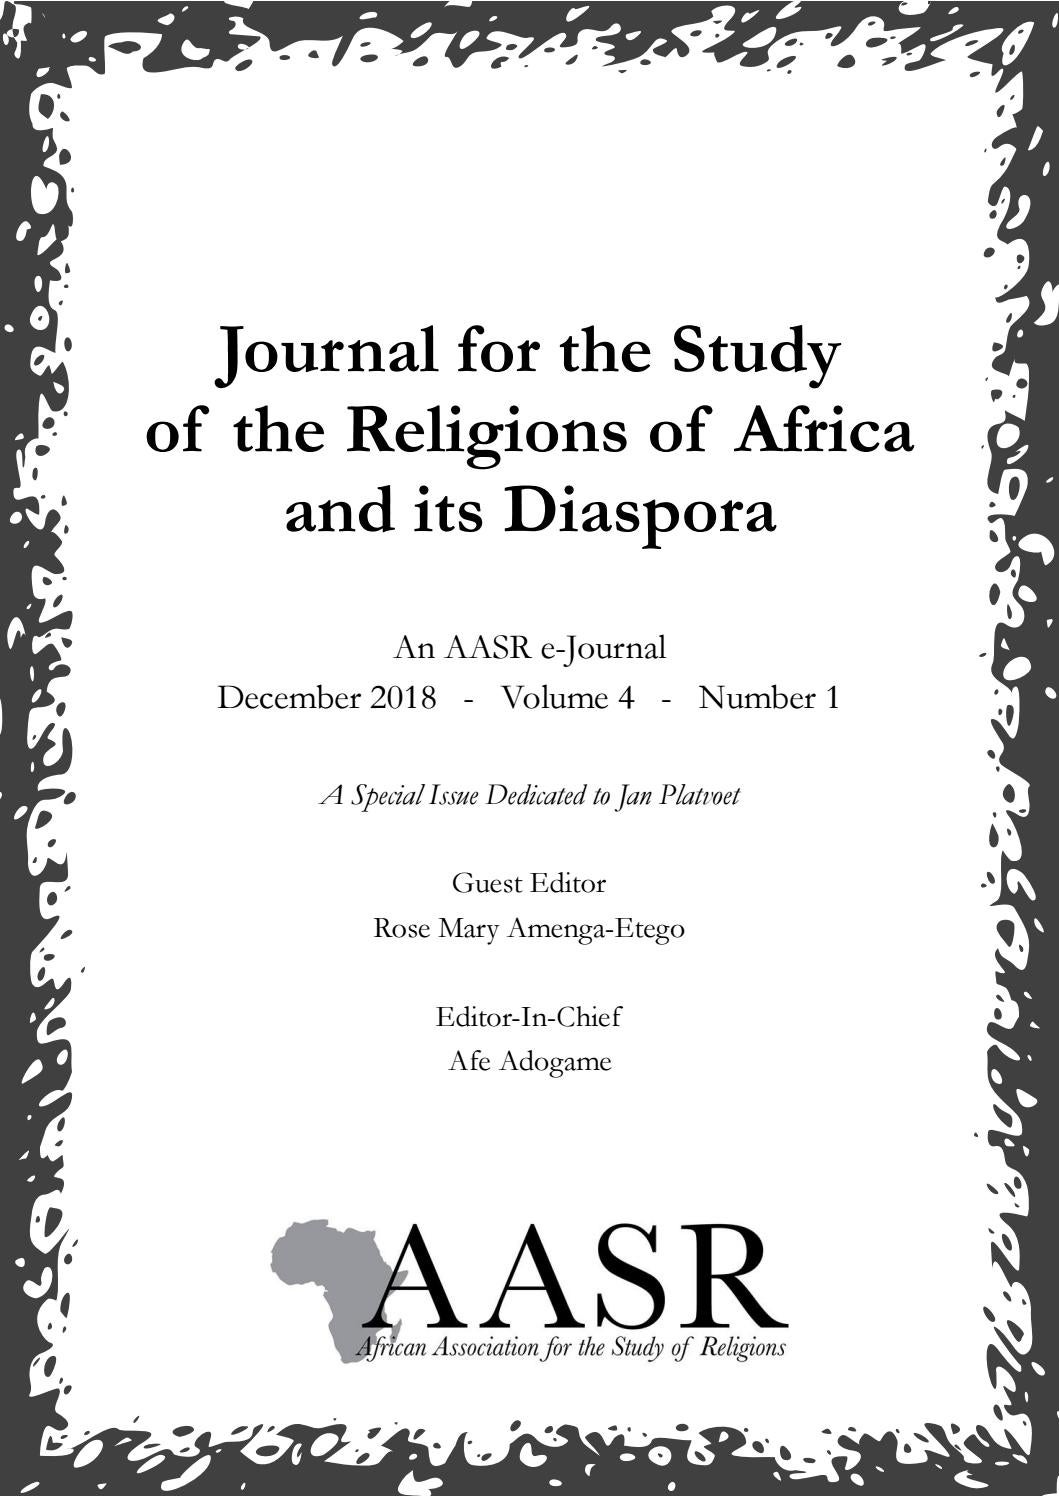 Journal for the Study of the Religions of Africa and its